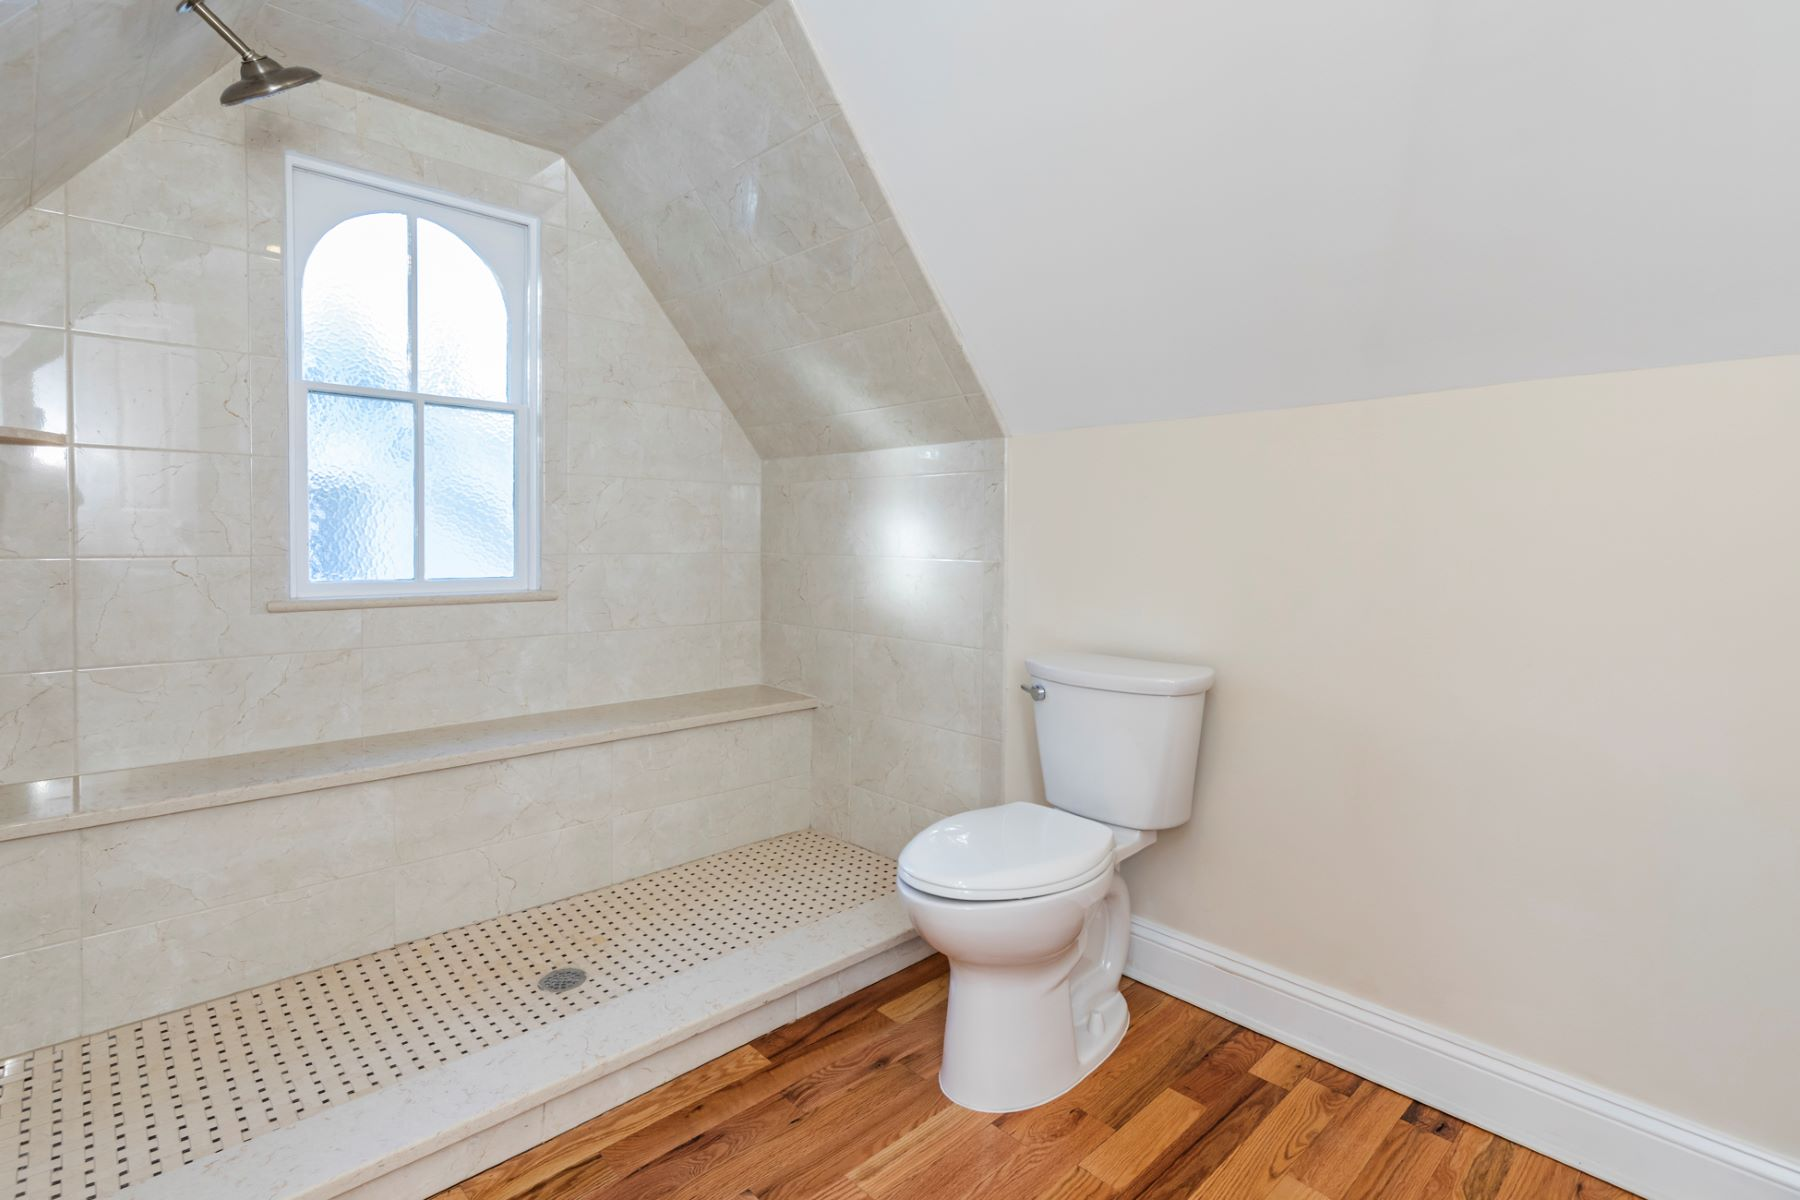 Additional photo for property listing at The Very Best Of Old And New 25 East Delaware Avenue, Pennington, New Jersey 08534 United States